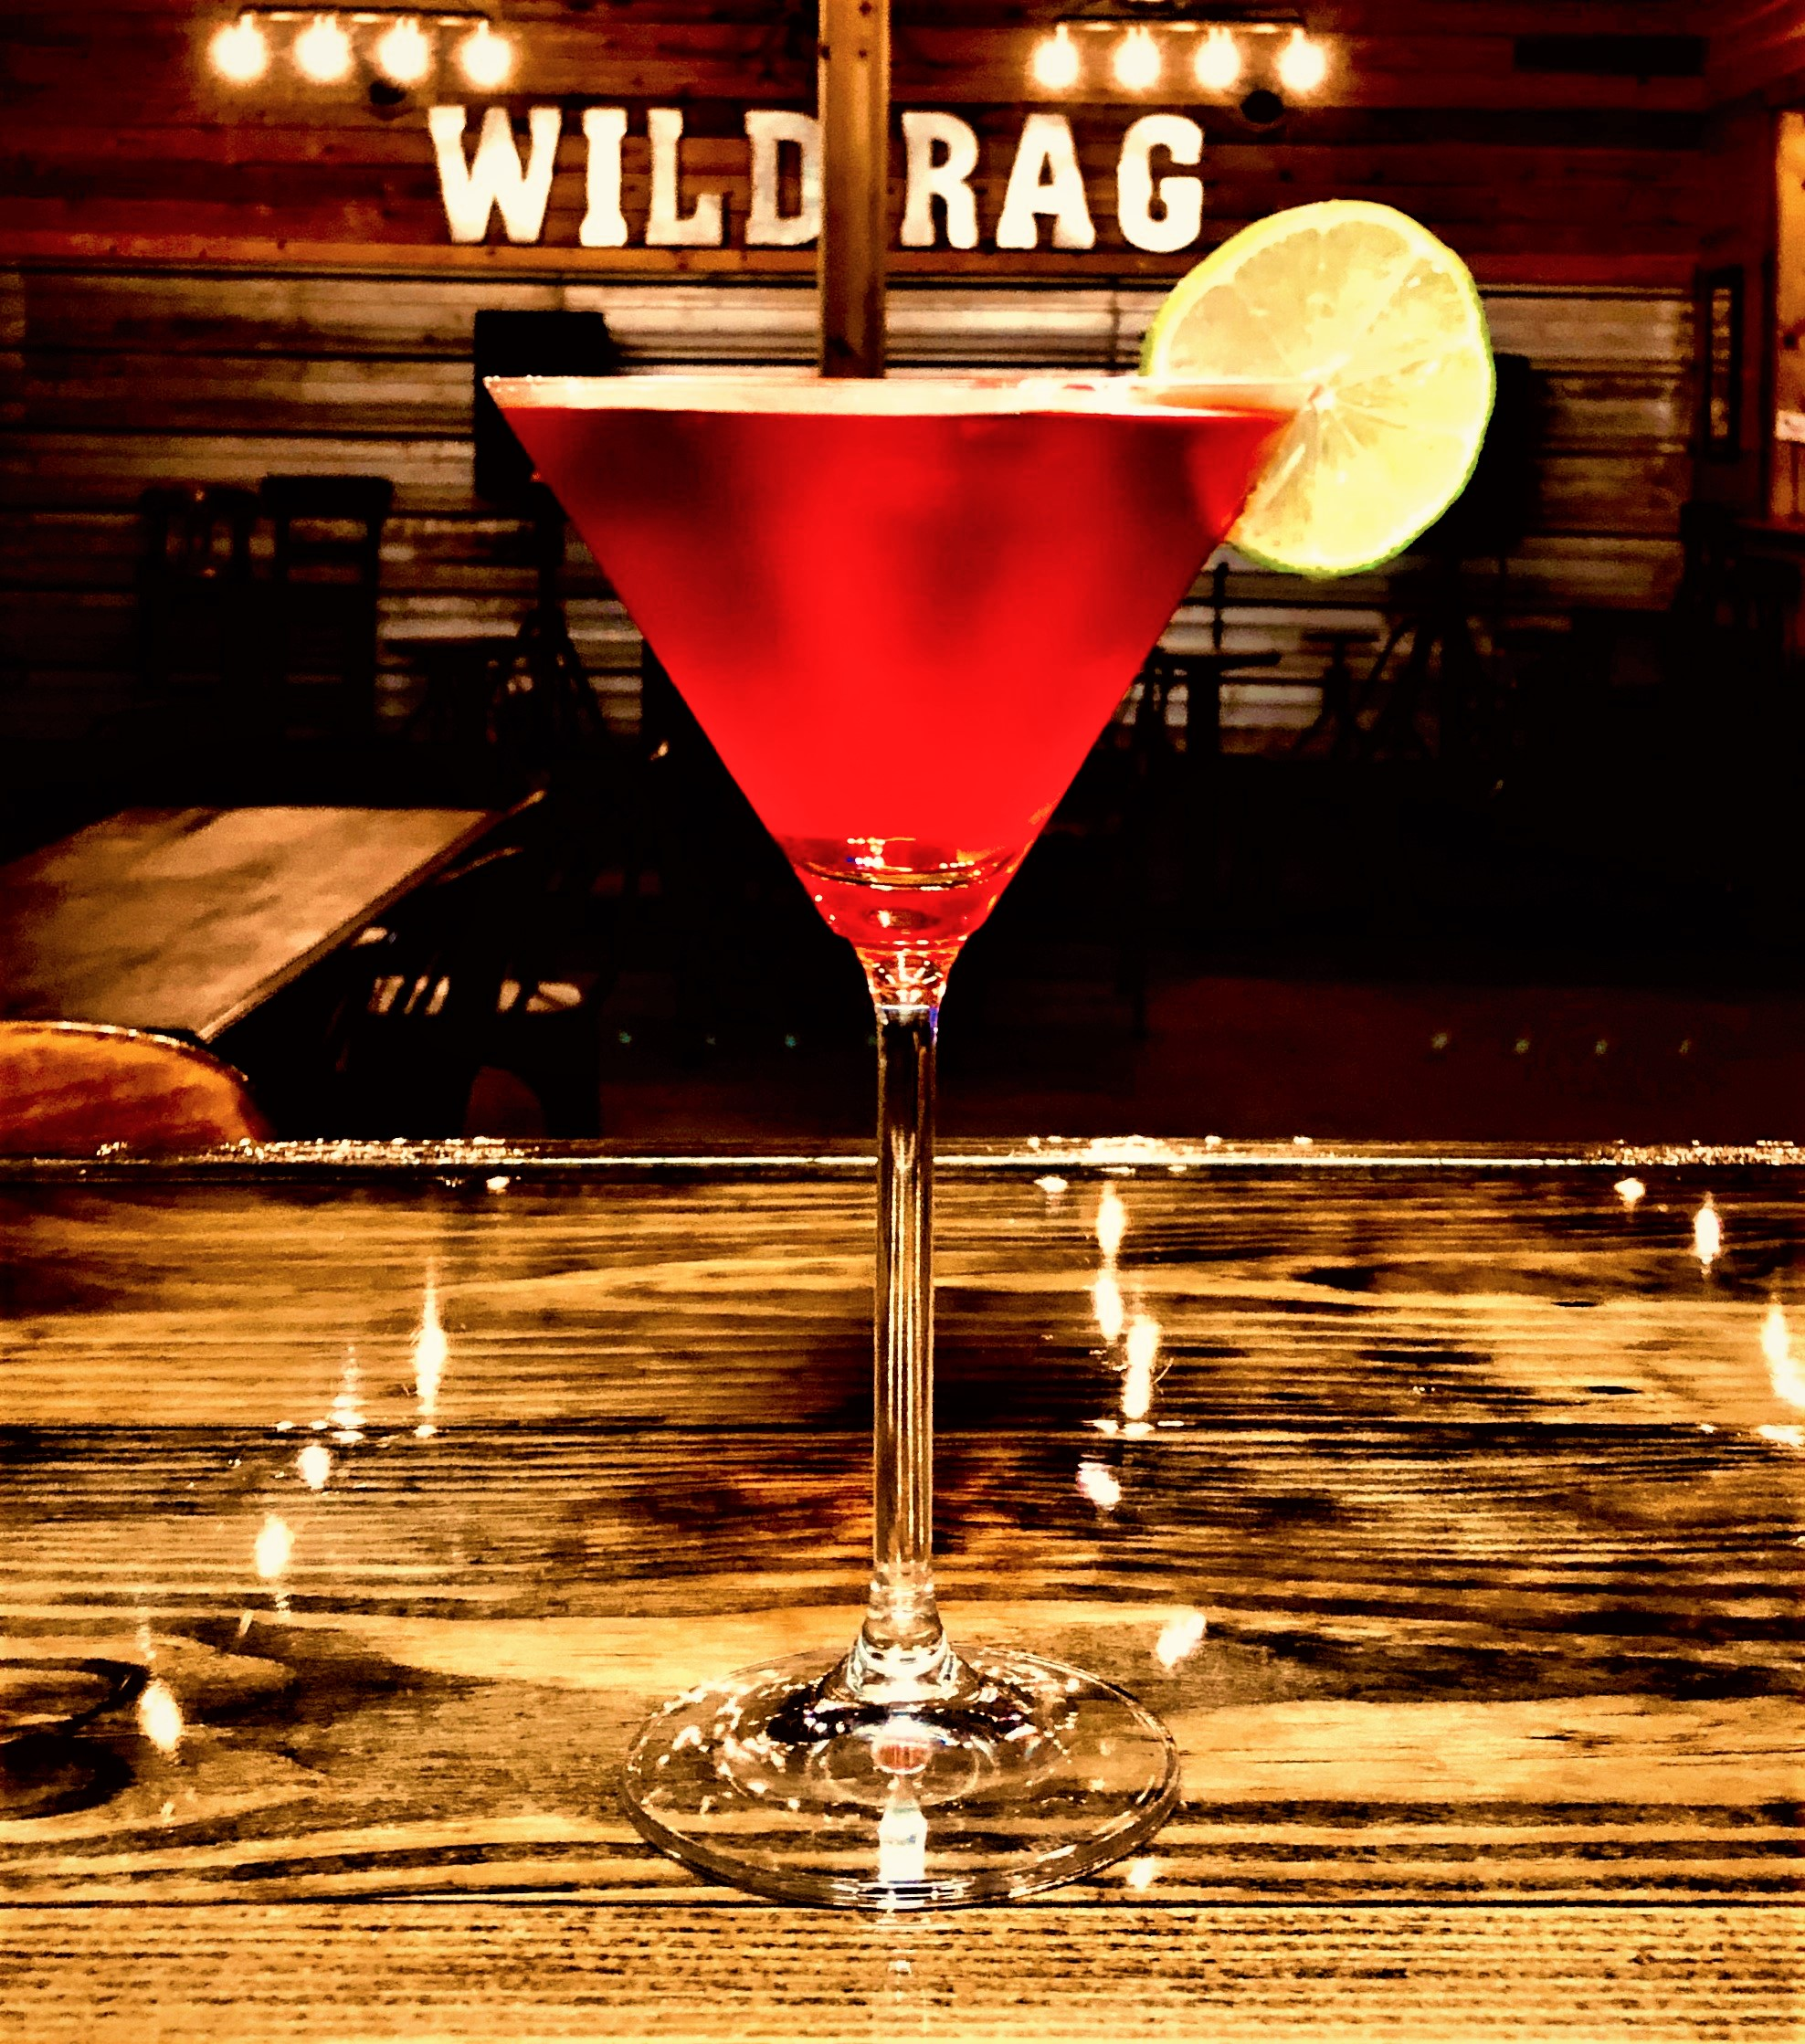 WRV COSMO   Chilled glass Add 1.5 shot of WILD RAG VODKA or WILD RAG MESQUITE BEAN VODKA 1/2 oz of triple sec Fill with Cranberry juice A squeeze of lime Garnish with a key lime slice.